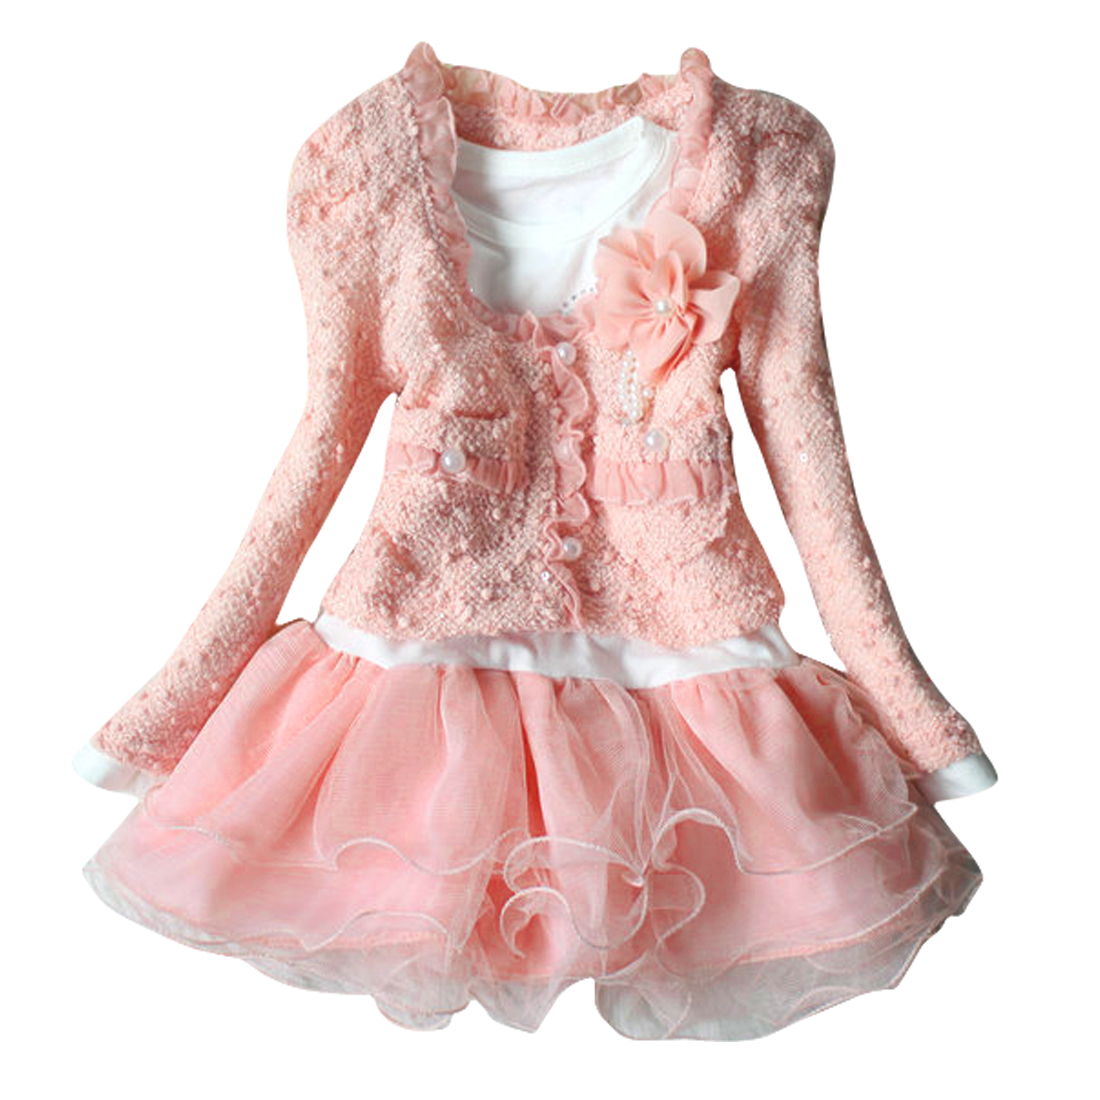 4T Pink Front Pockets Scalloped Cardigan w Butterfly Print Dress for Girls